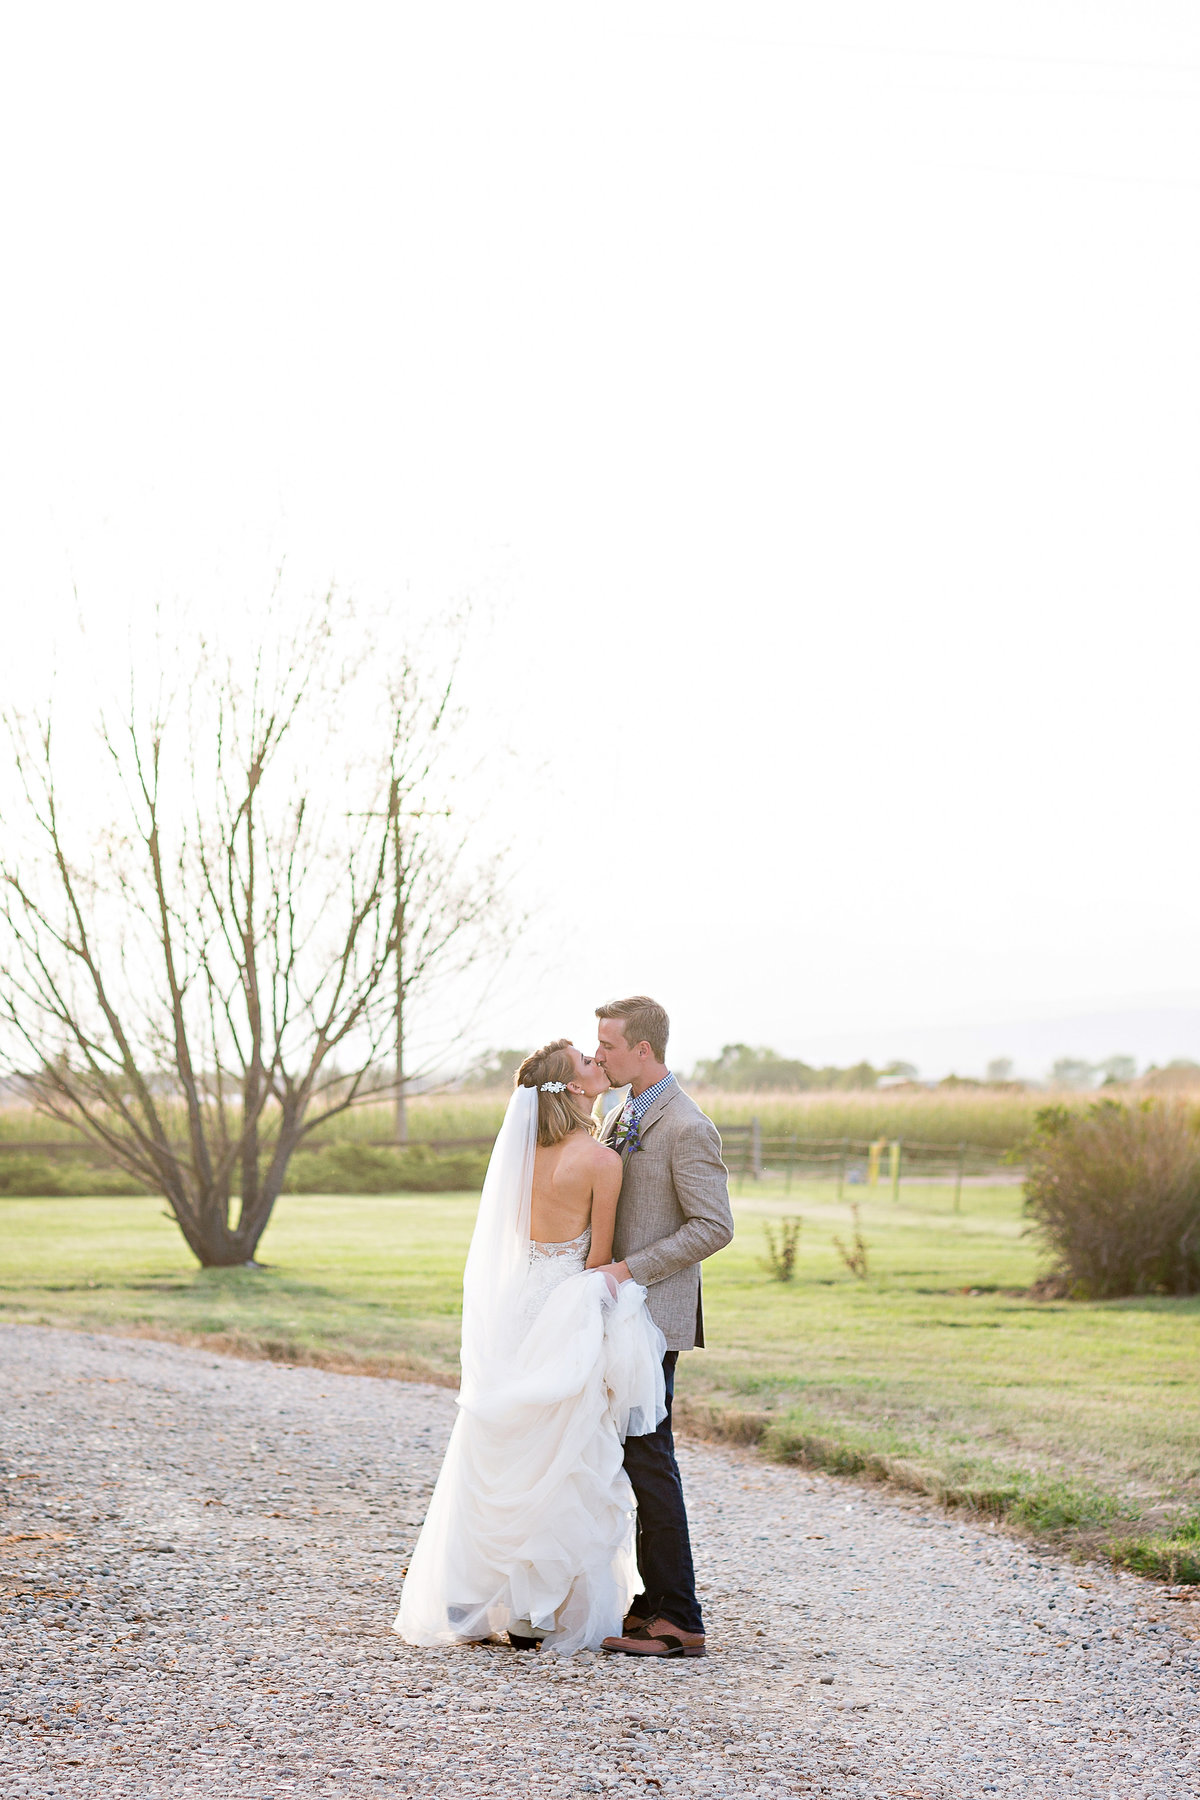 brenna&craig_wed_1407